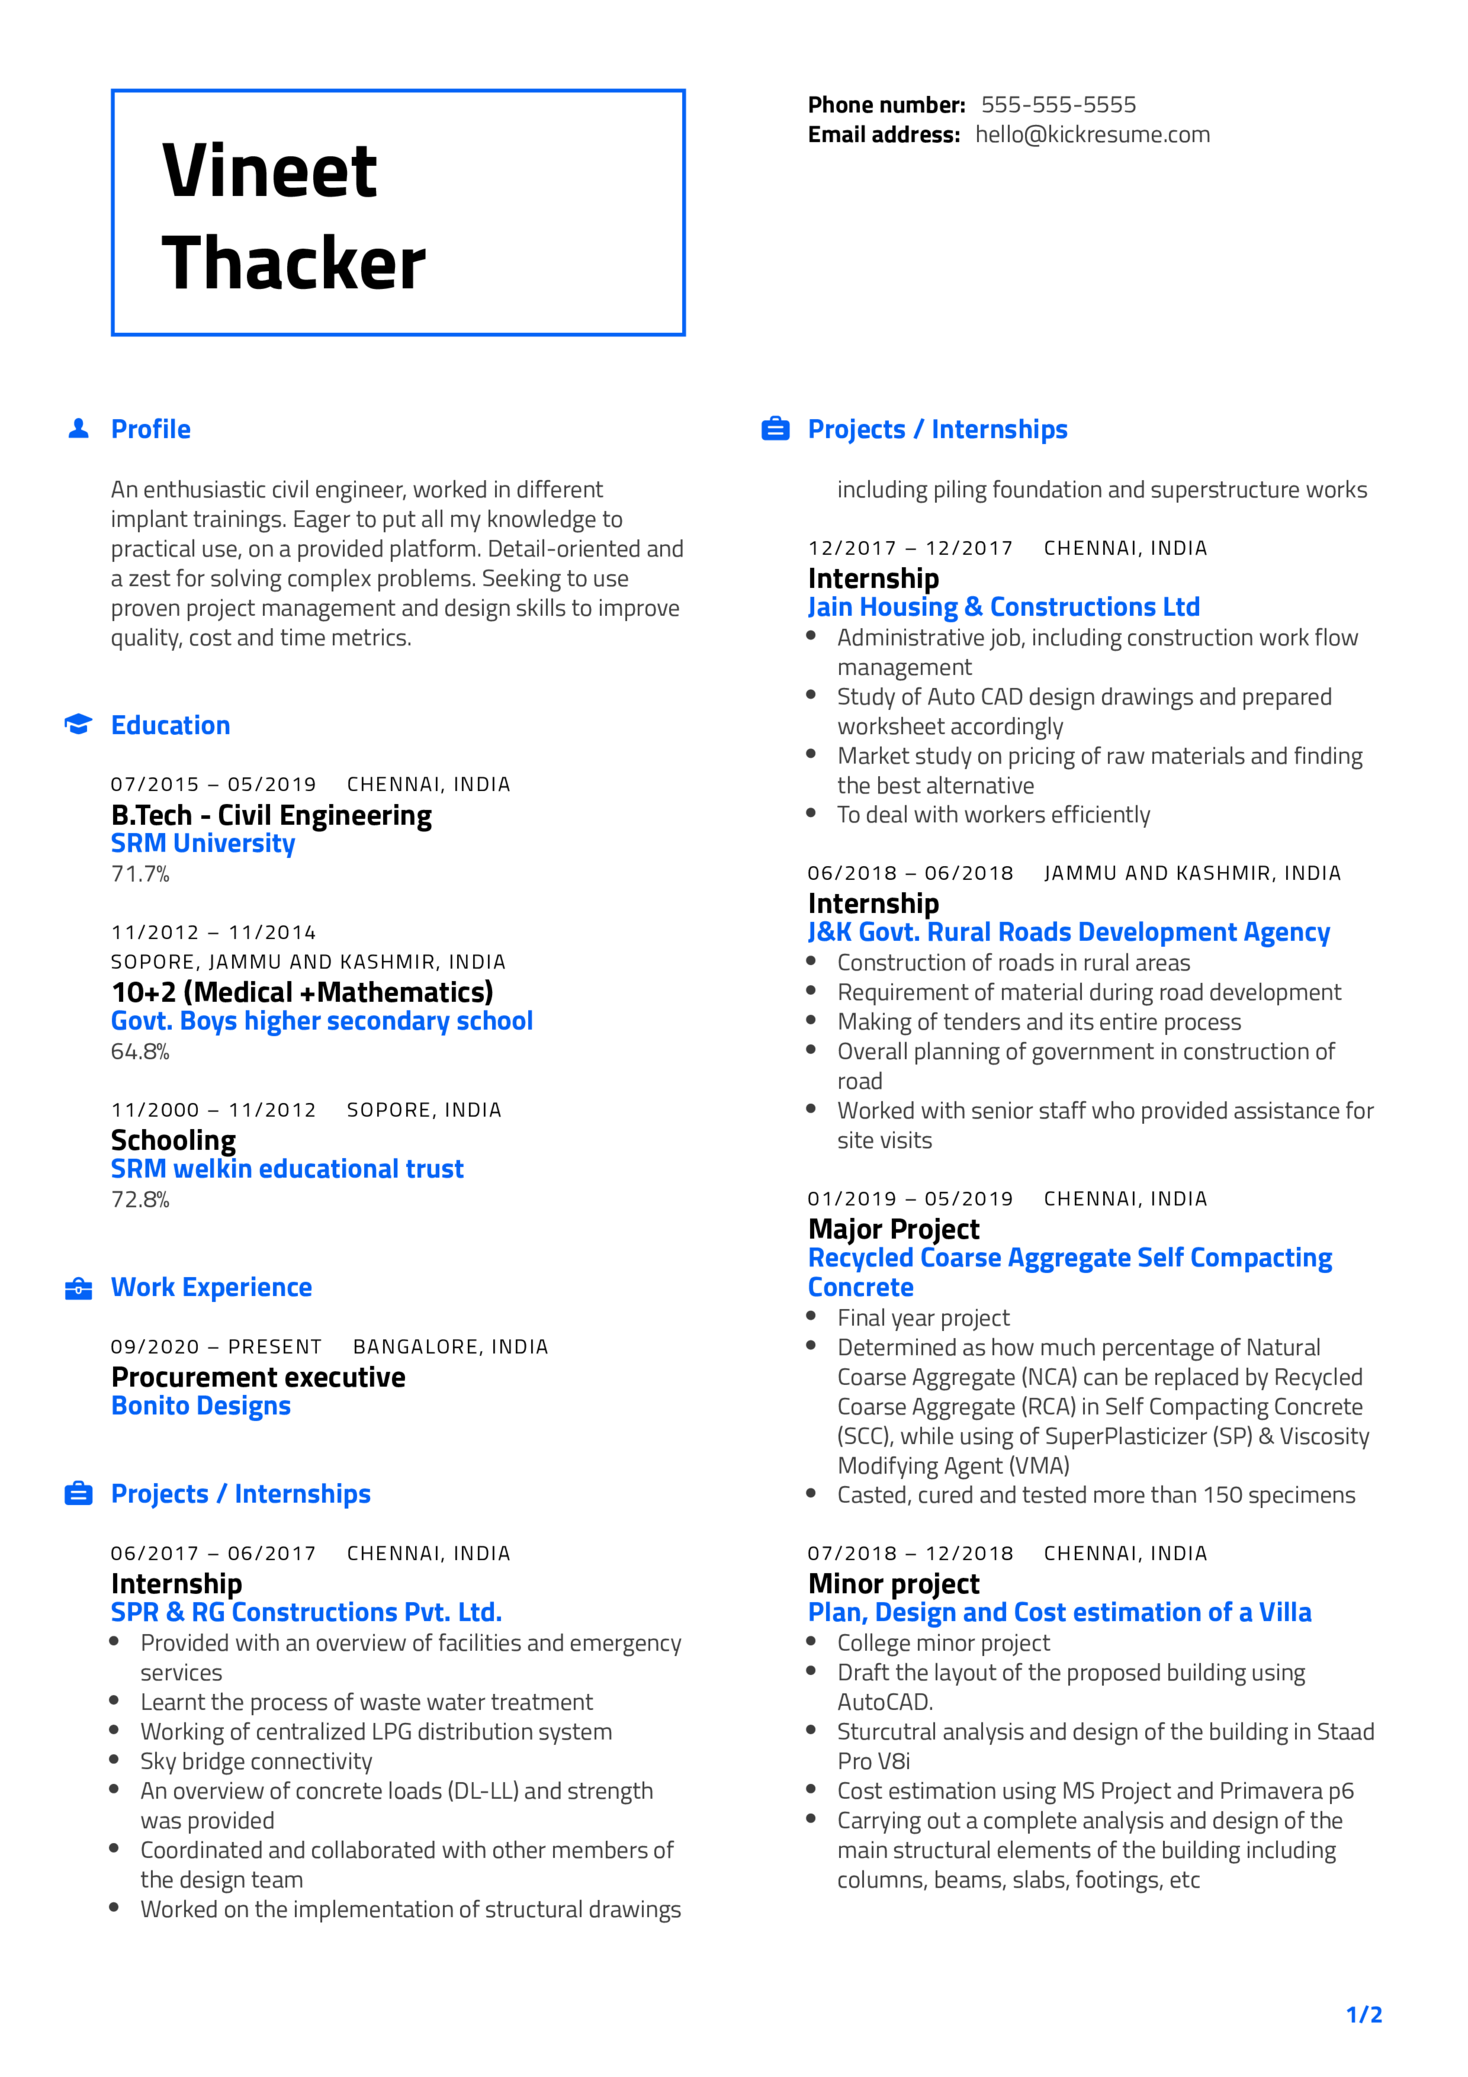 Procurement Executive Resume Sample (Teil 1)